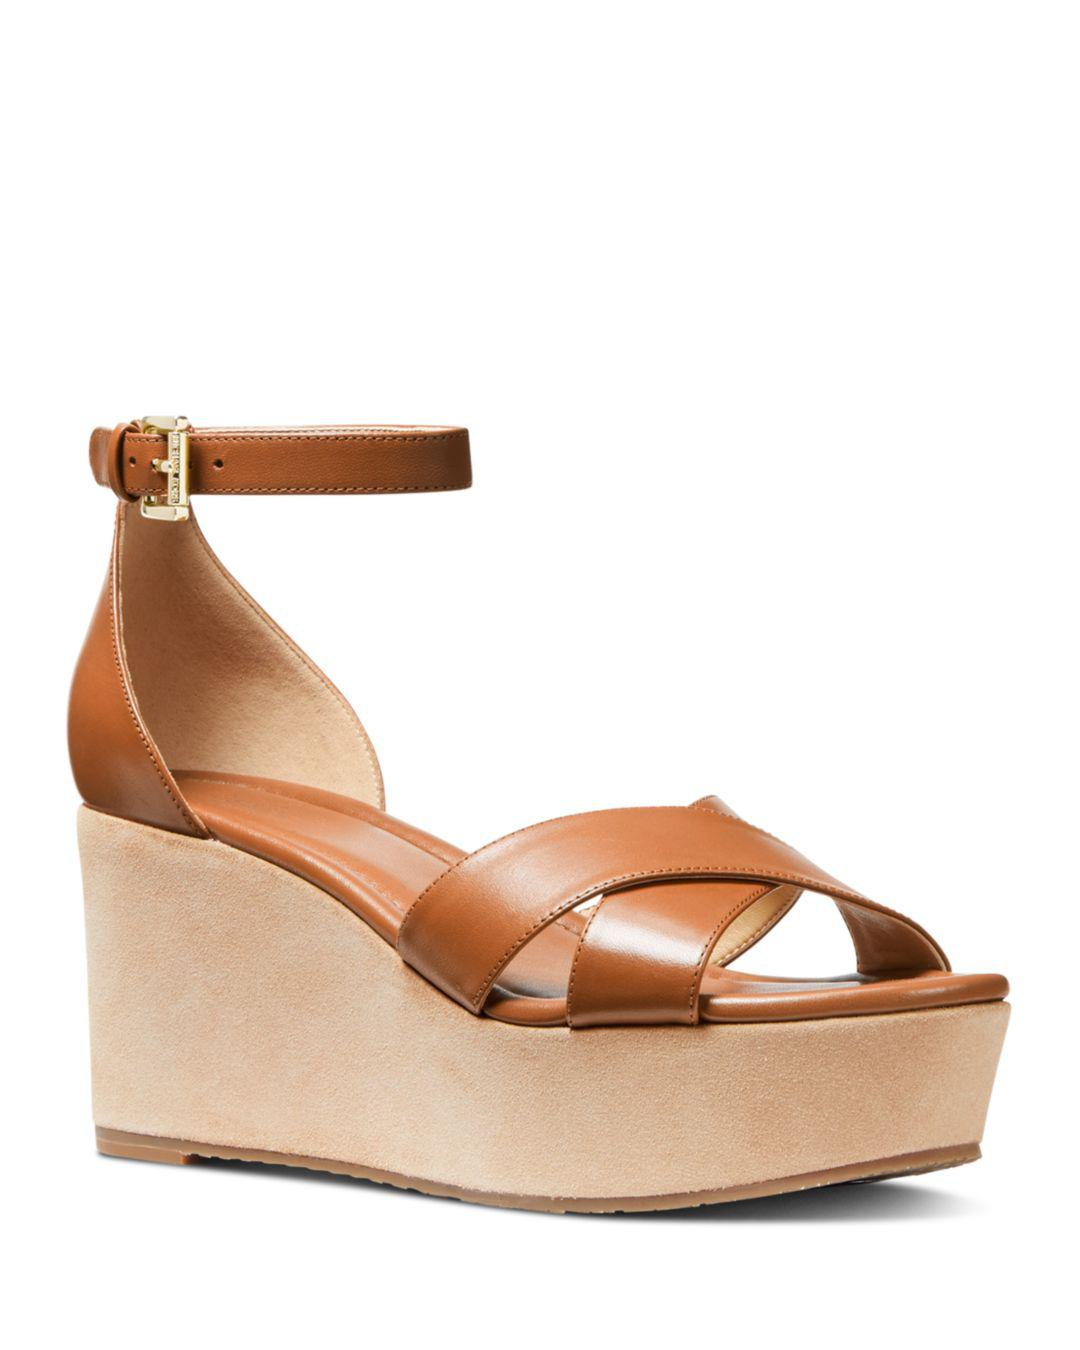 50d85089e2a Lyst - MICHAEL Michael Kors Women s Desiree Wedge Sandals in Brown